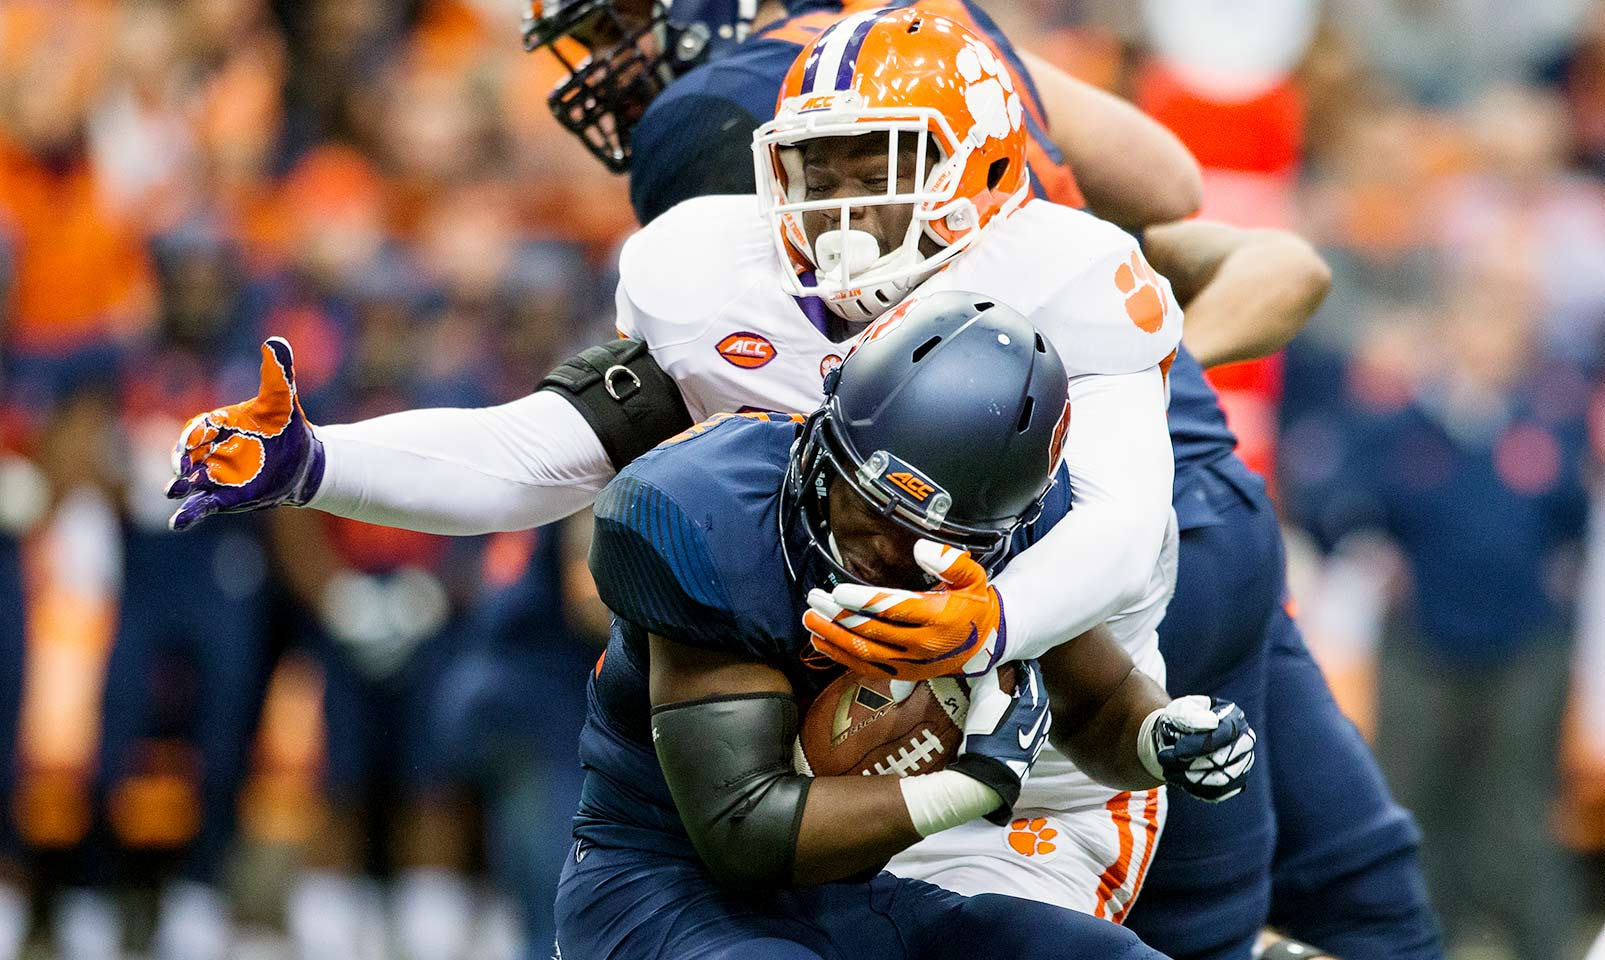 Clemson 37, Syracuse 27: Despite three turnovers that helped the Orange hang around, the Tigers pulled away with 473 yards of offense from Deshaun Watson.